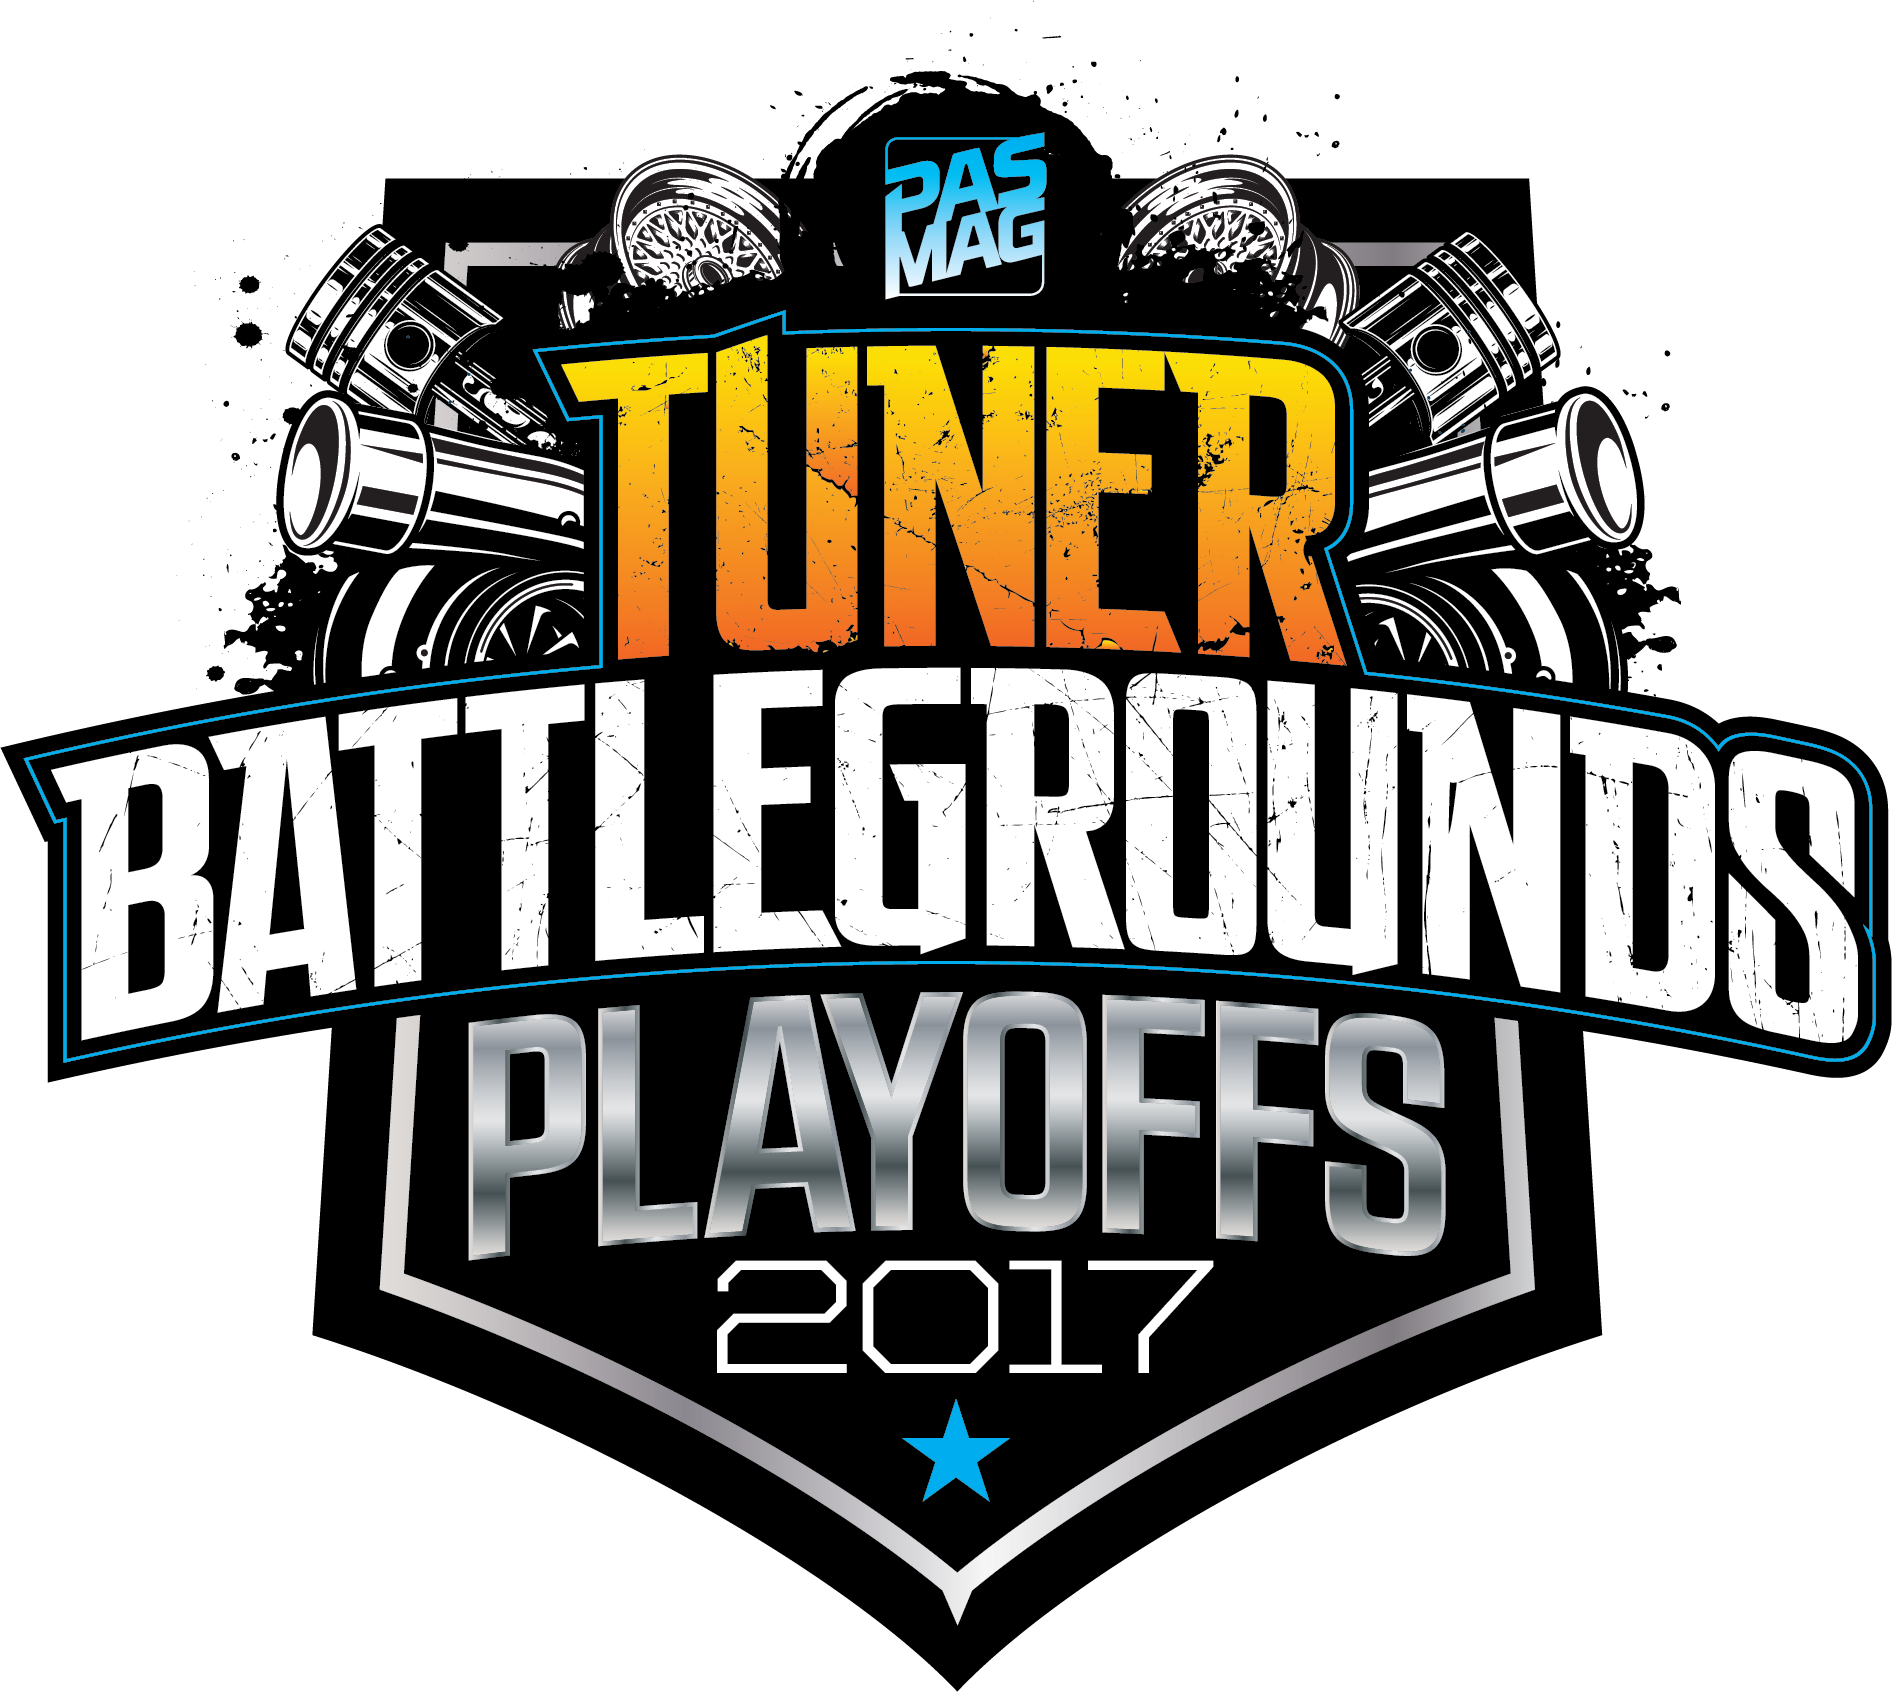 TBG Playoffs Blk 2017 WEB